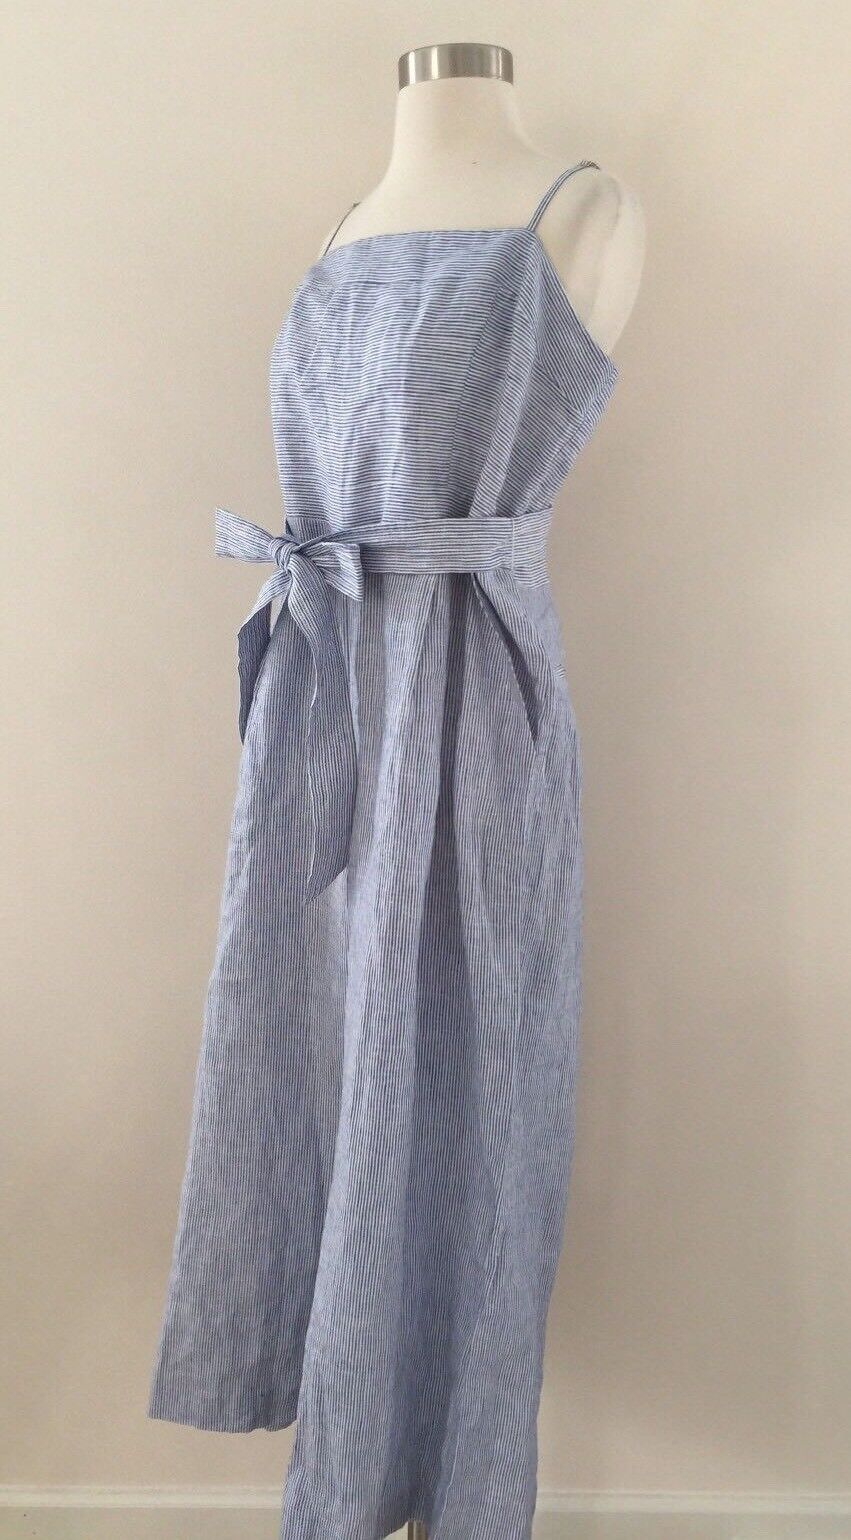 New JCREW Striped Linen Jumpsuit With Tie Size 12 bluee White Stripes G5964